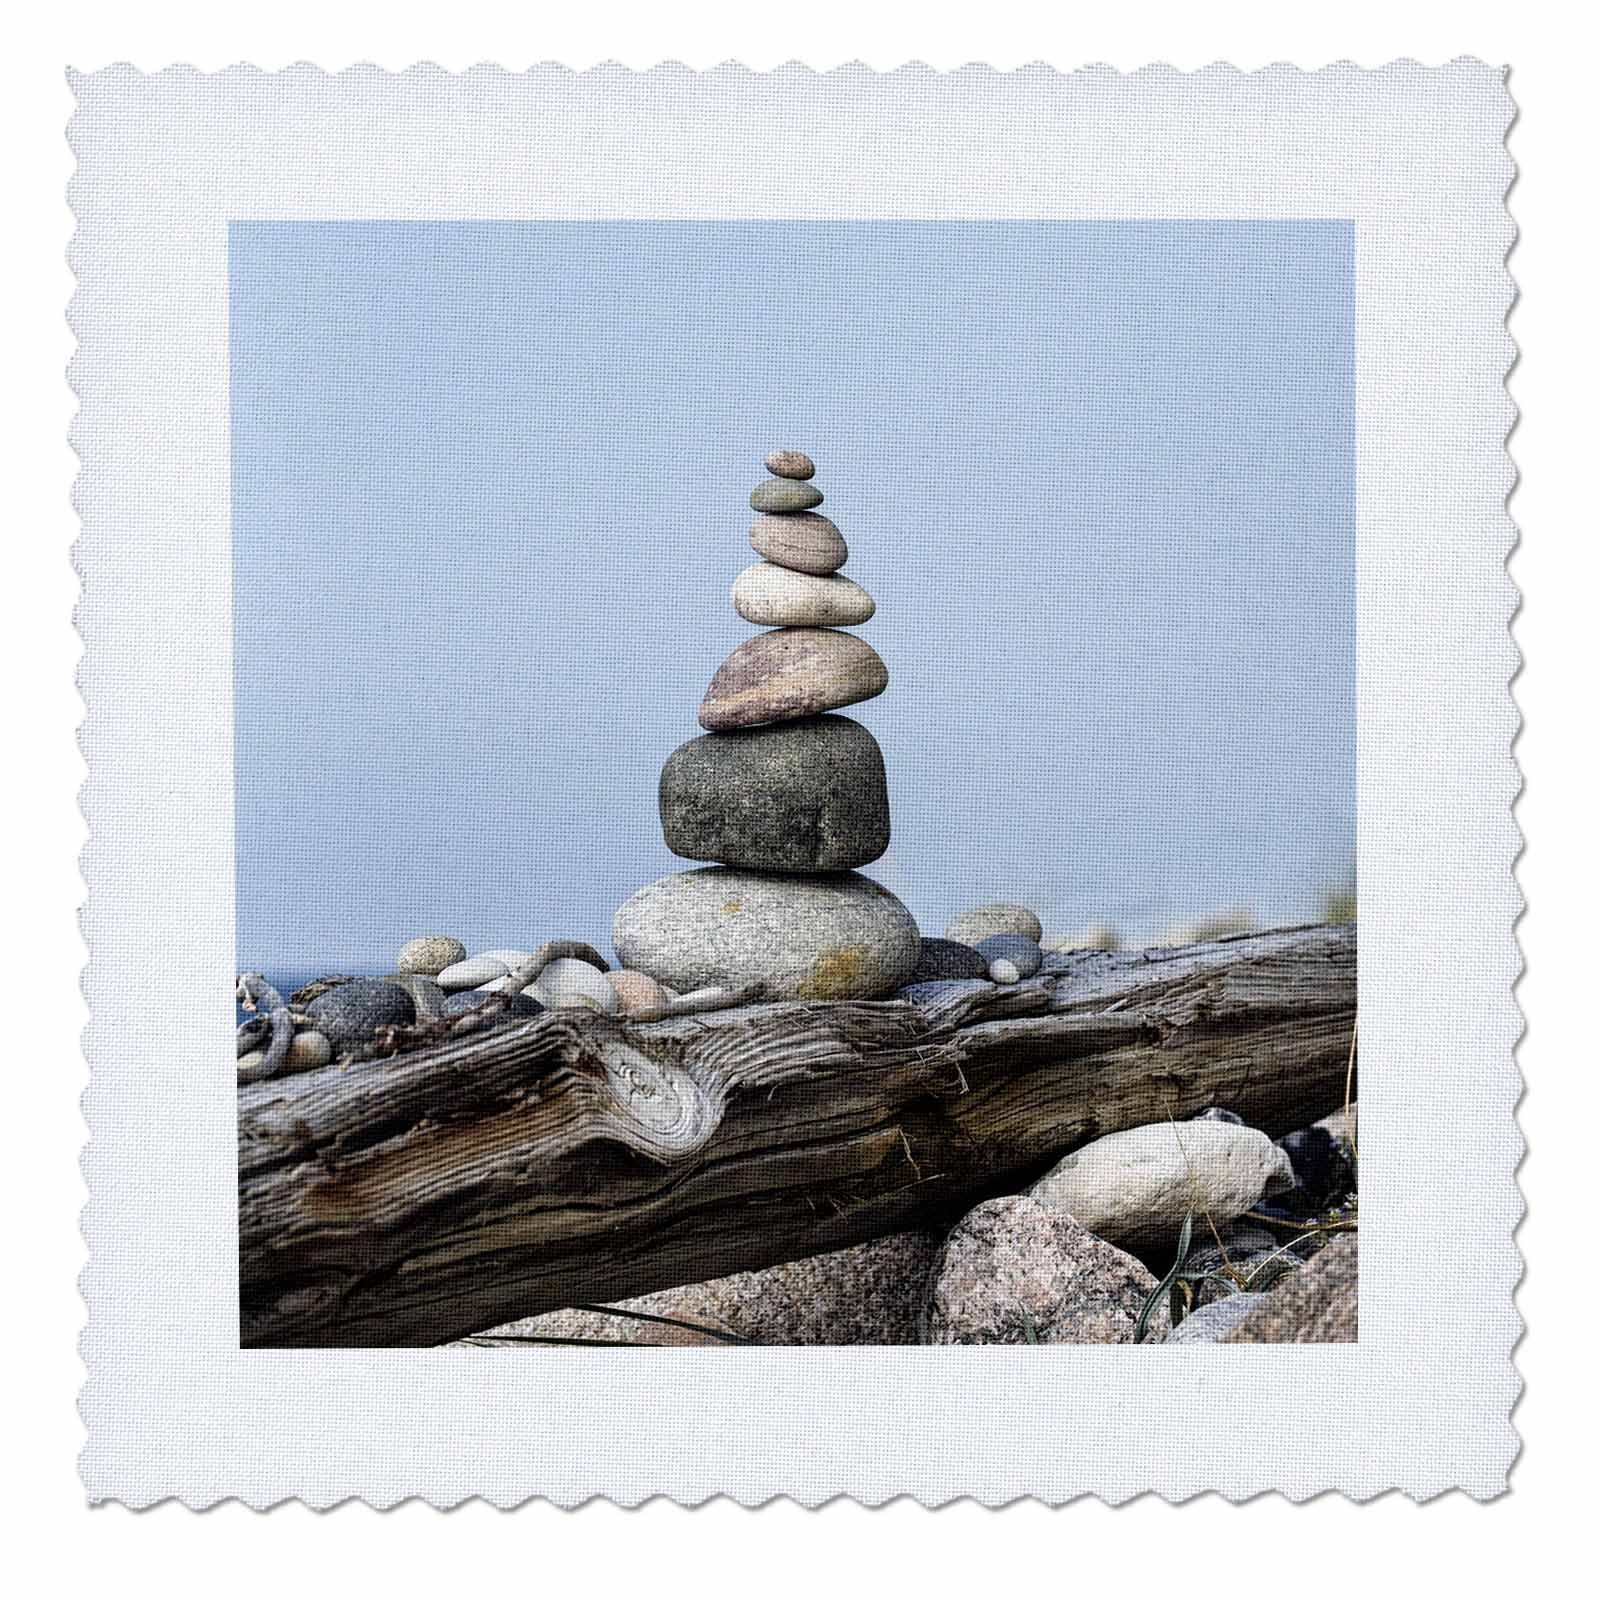 3dRose Andrea Haase Nature Photography - Balanced Stone Cairn On Driftwood With Blue Sky - 18x18 inch quilt square (qs_274831_7)